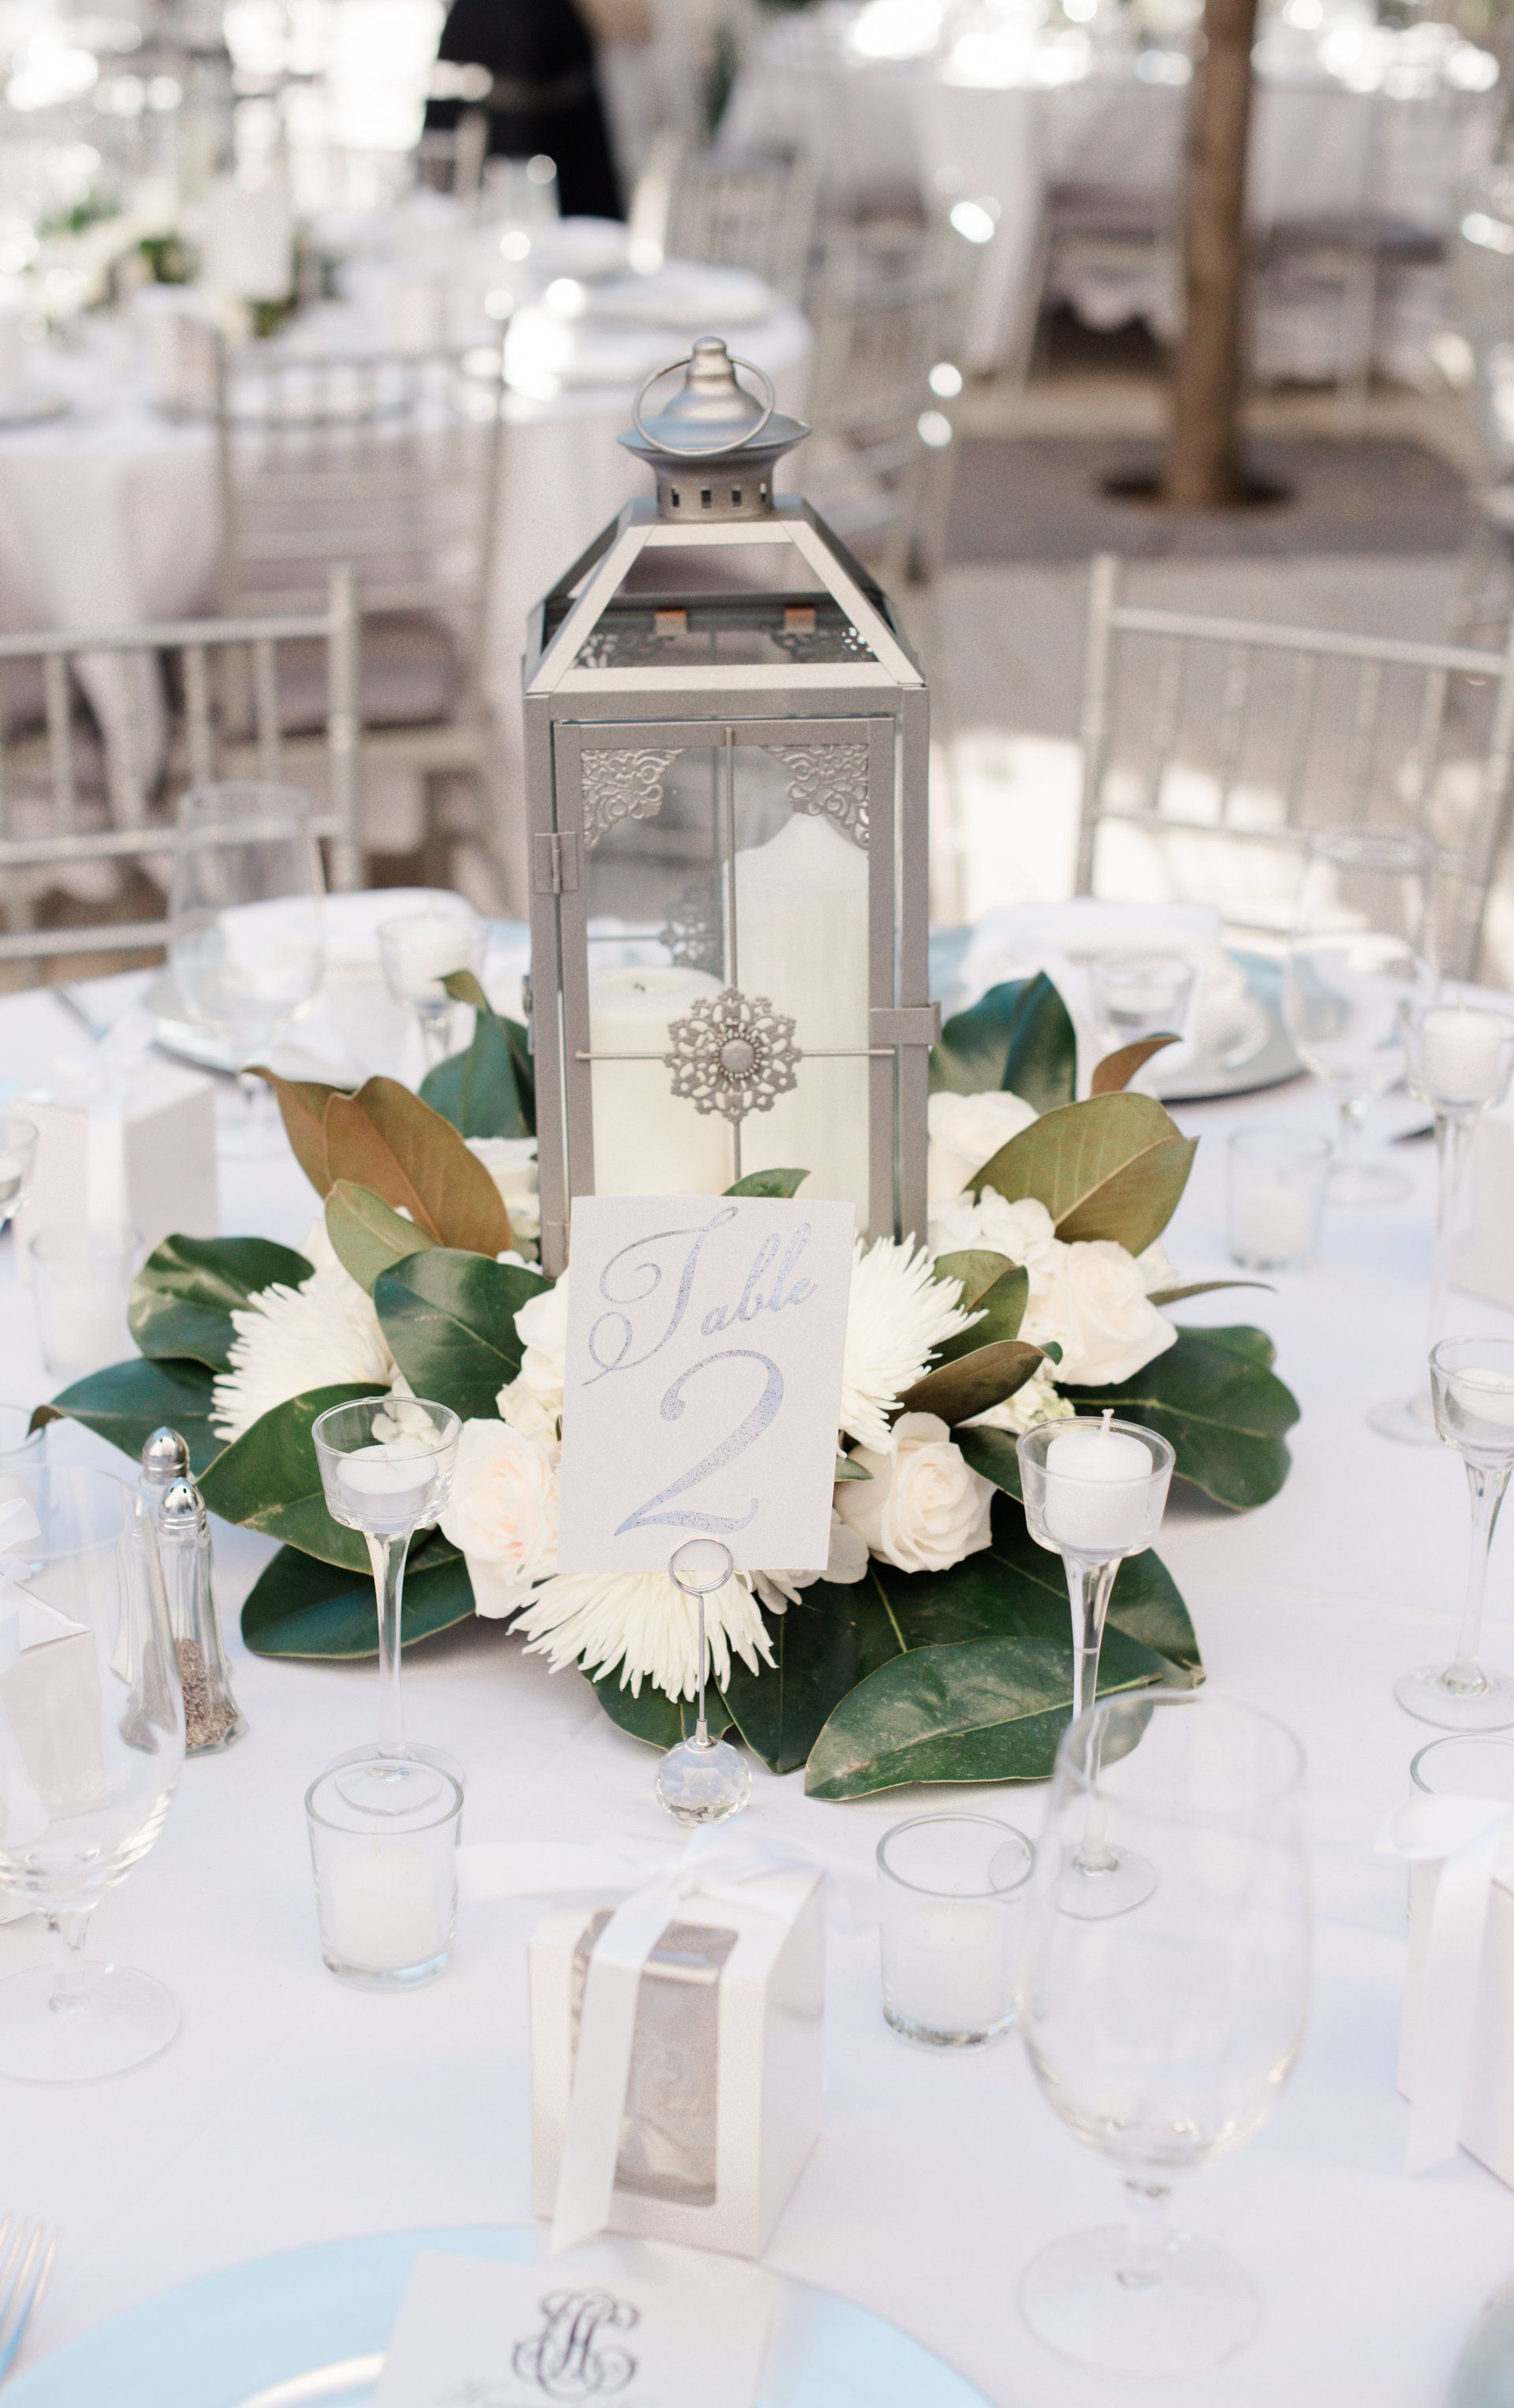 Silver lantern, magnolias, candles, table numbers, wedding ...